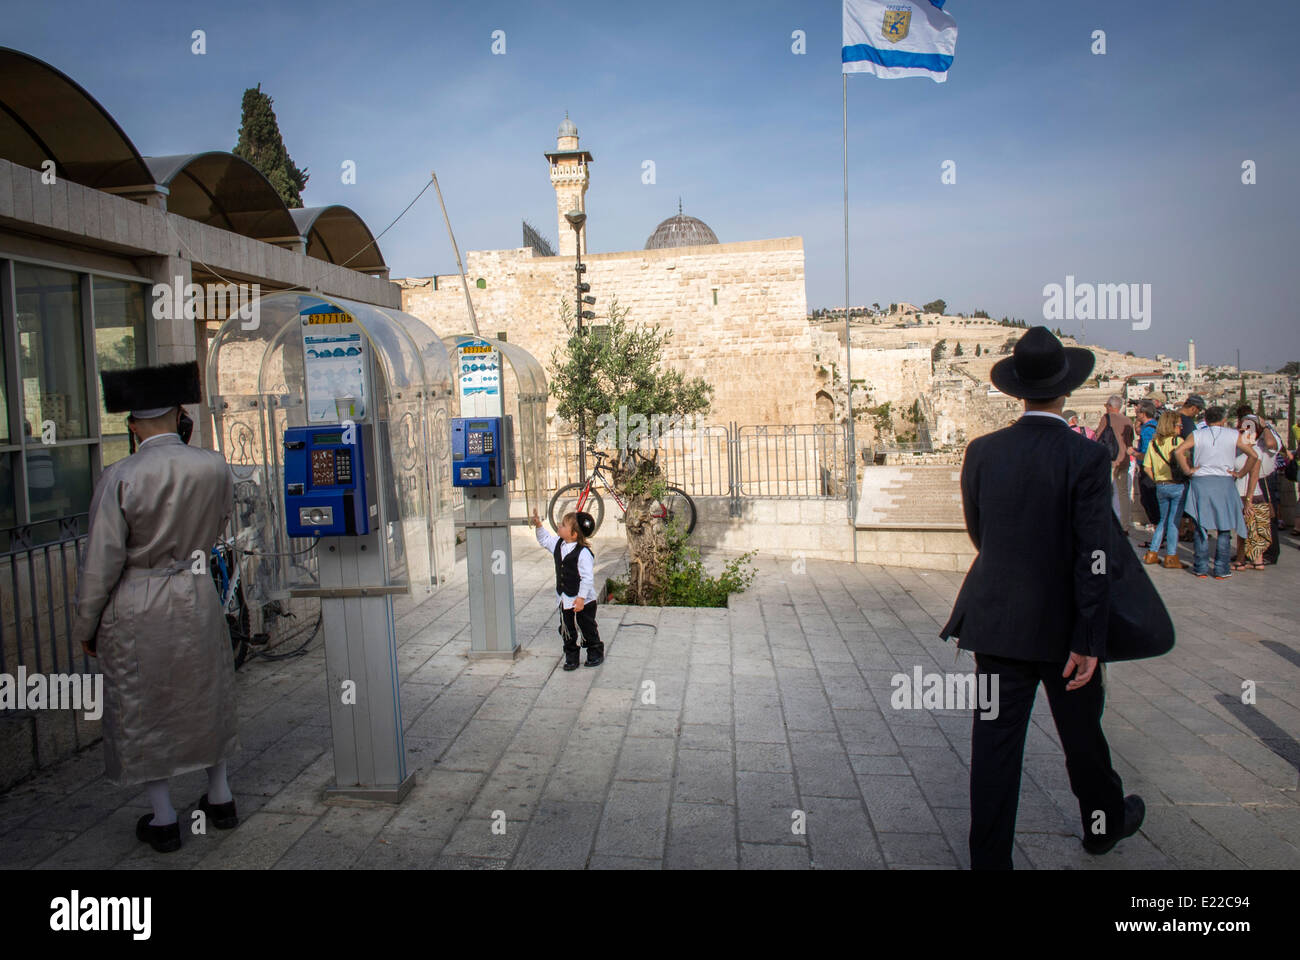 Outside the entrance to the 'Western Wall' at the Temple Mount in Jerusalem. - Stock Image